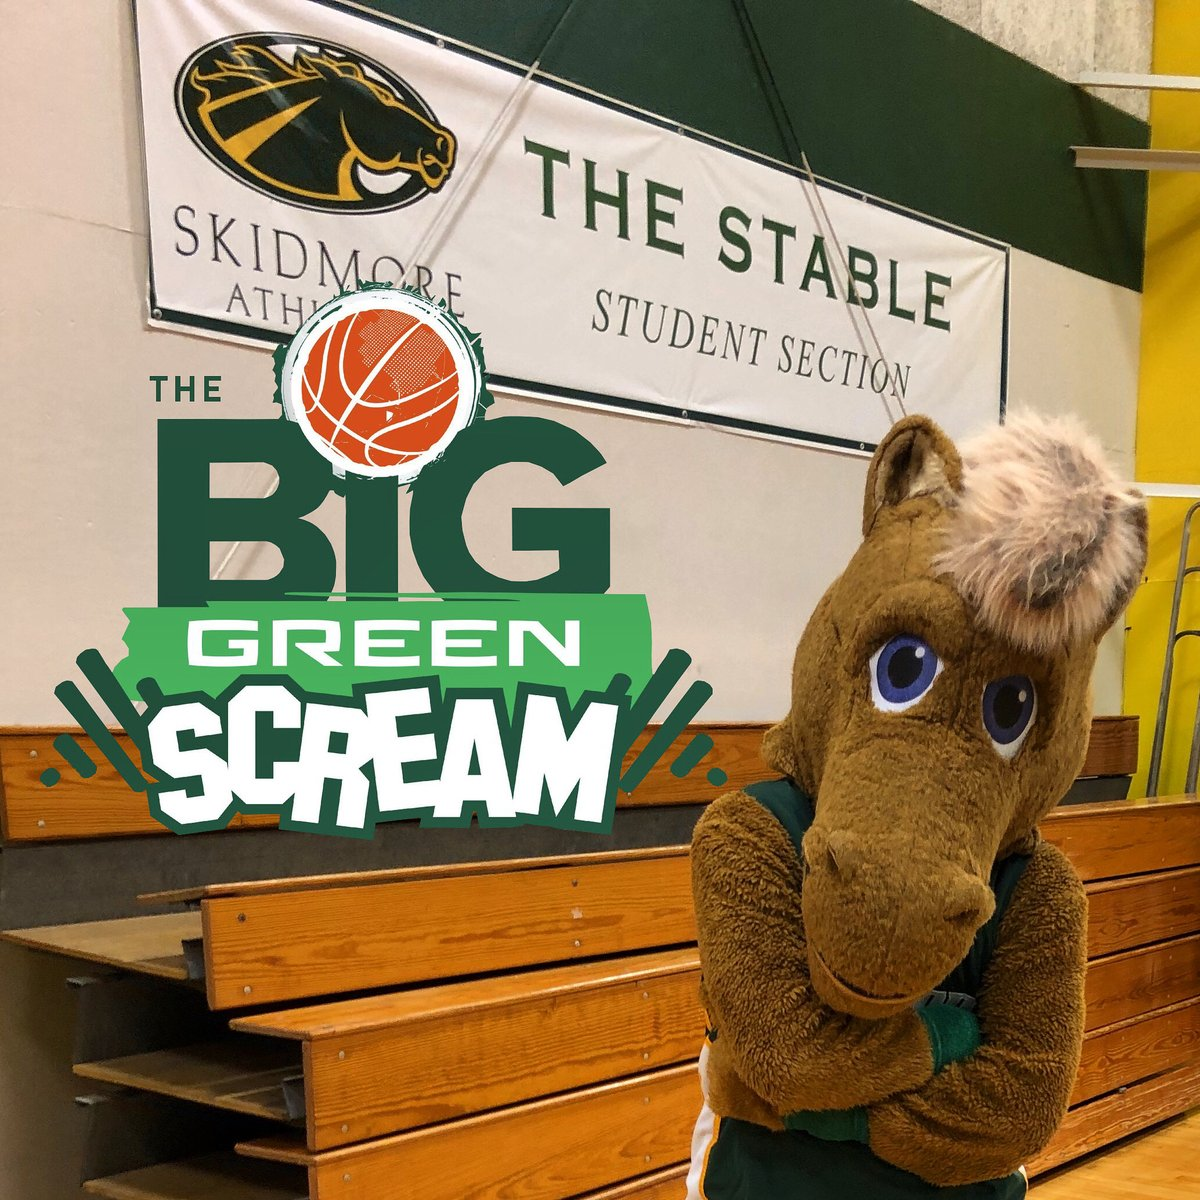 Y'all ain't even ready. Final home game for @SkidmoreMBB and @SkidmoreWBB. It's gonna be bedlam. 😤#BigGreenScream https://t.co/pBB64vdo8C